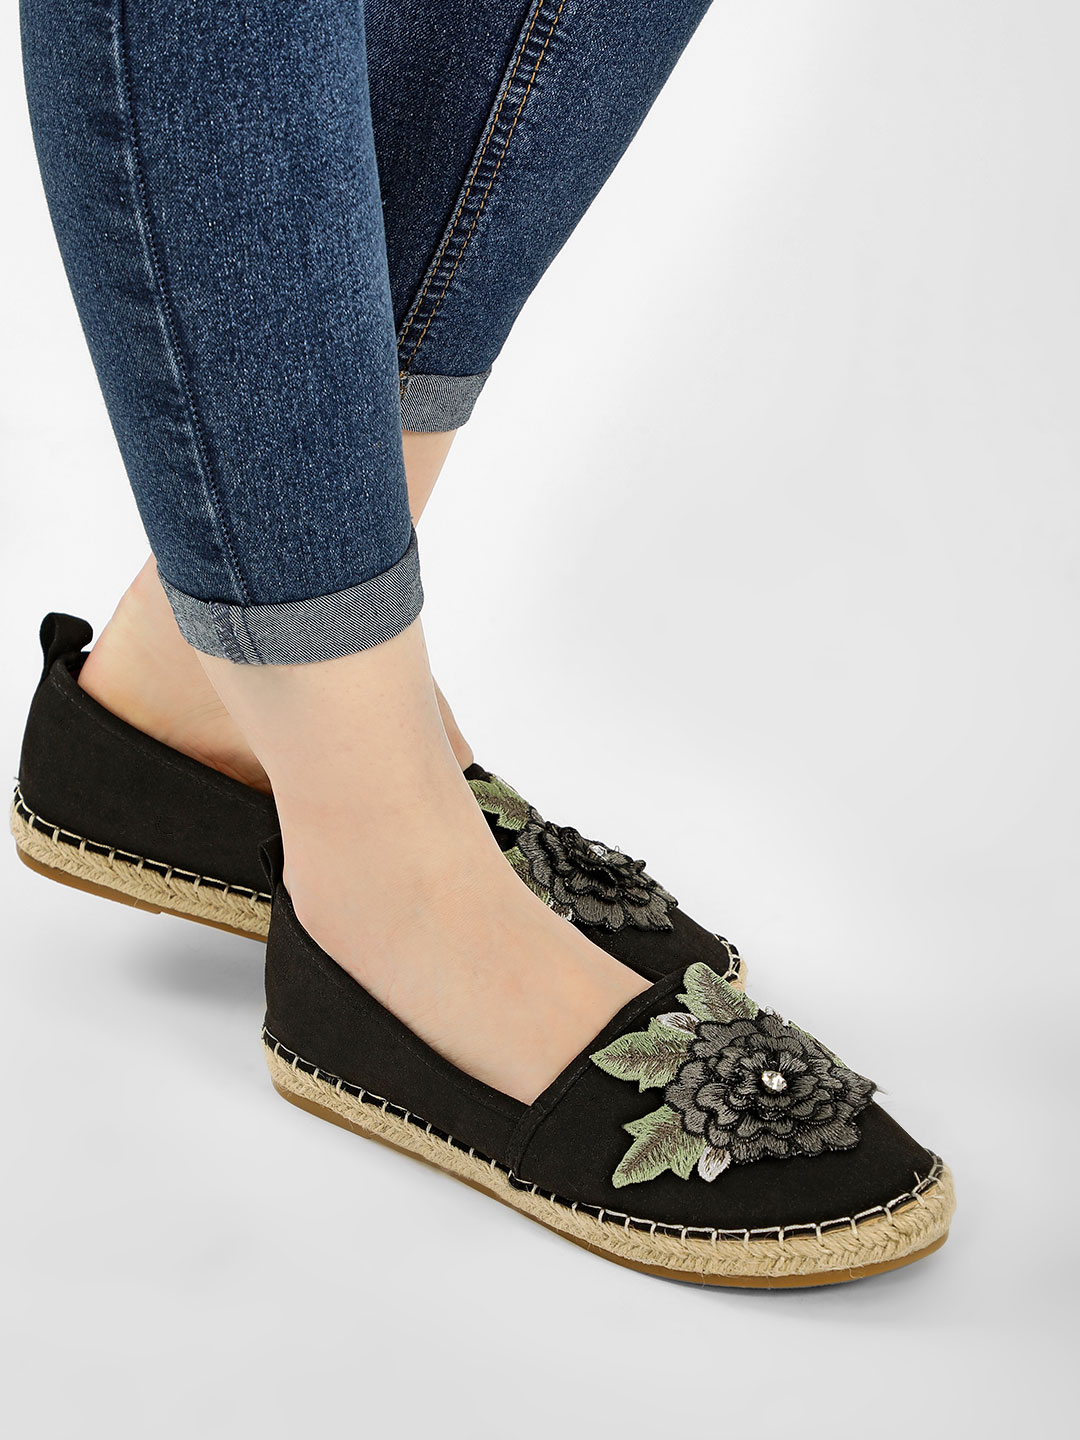 My Foot Couture Black Glossy Applique Flower Espadrilles 1